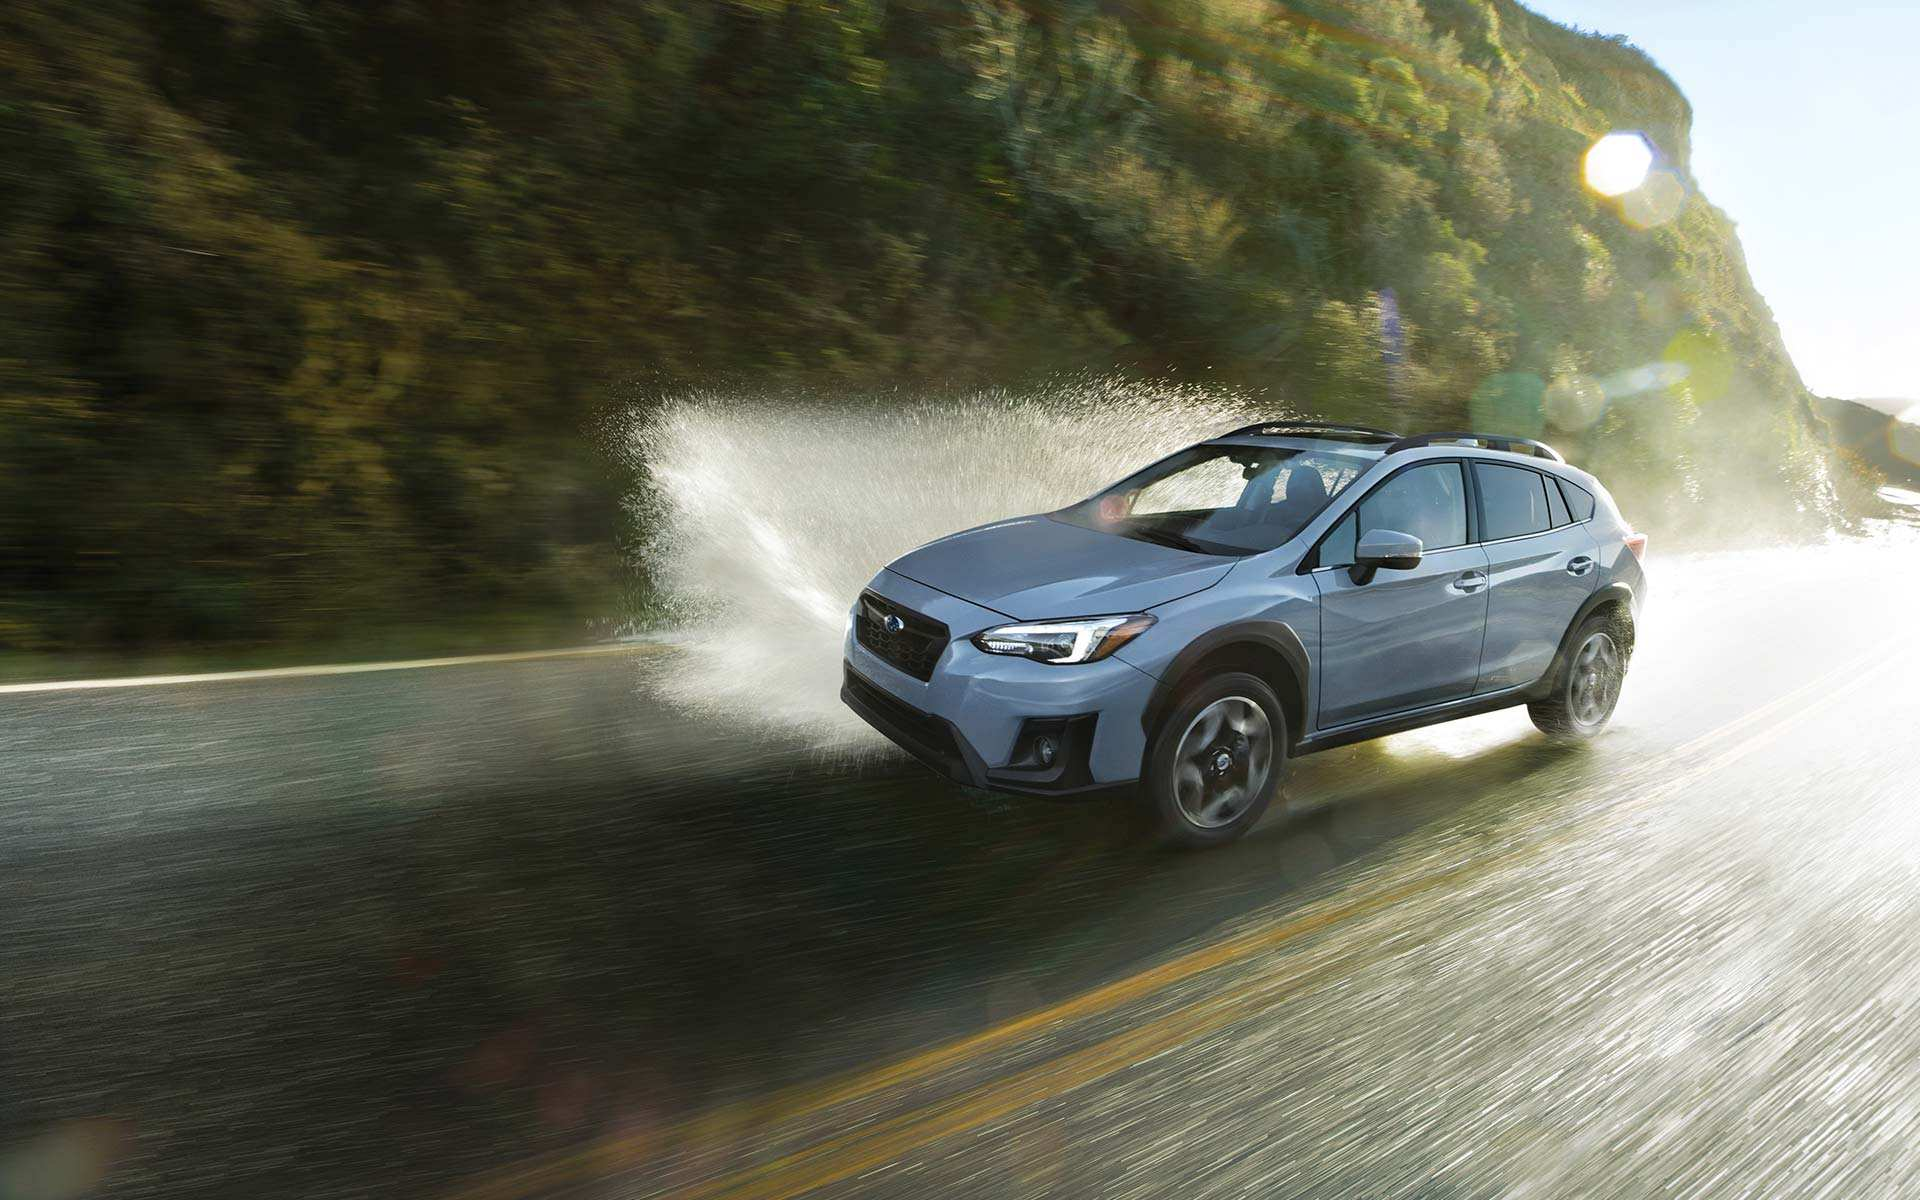 45 New Subaru Xv 2019 Prices with Subaru Xv 2019